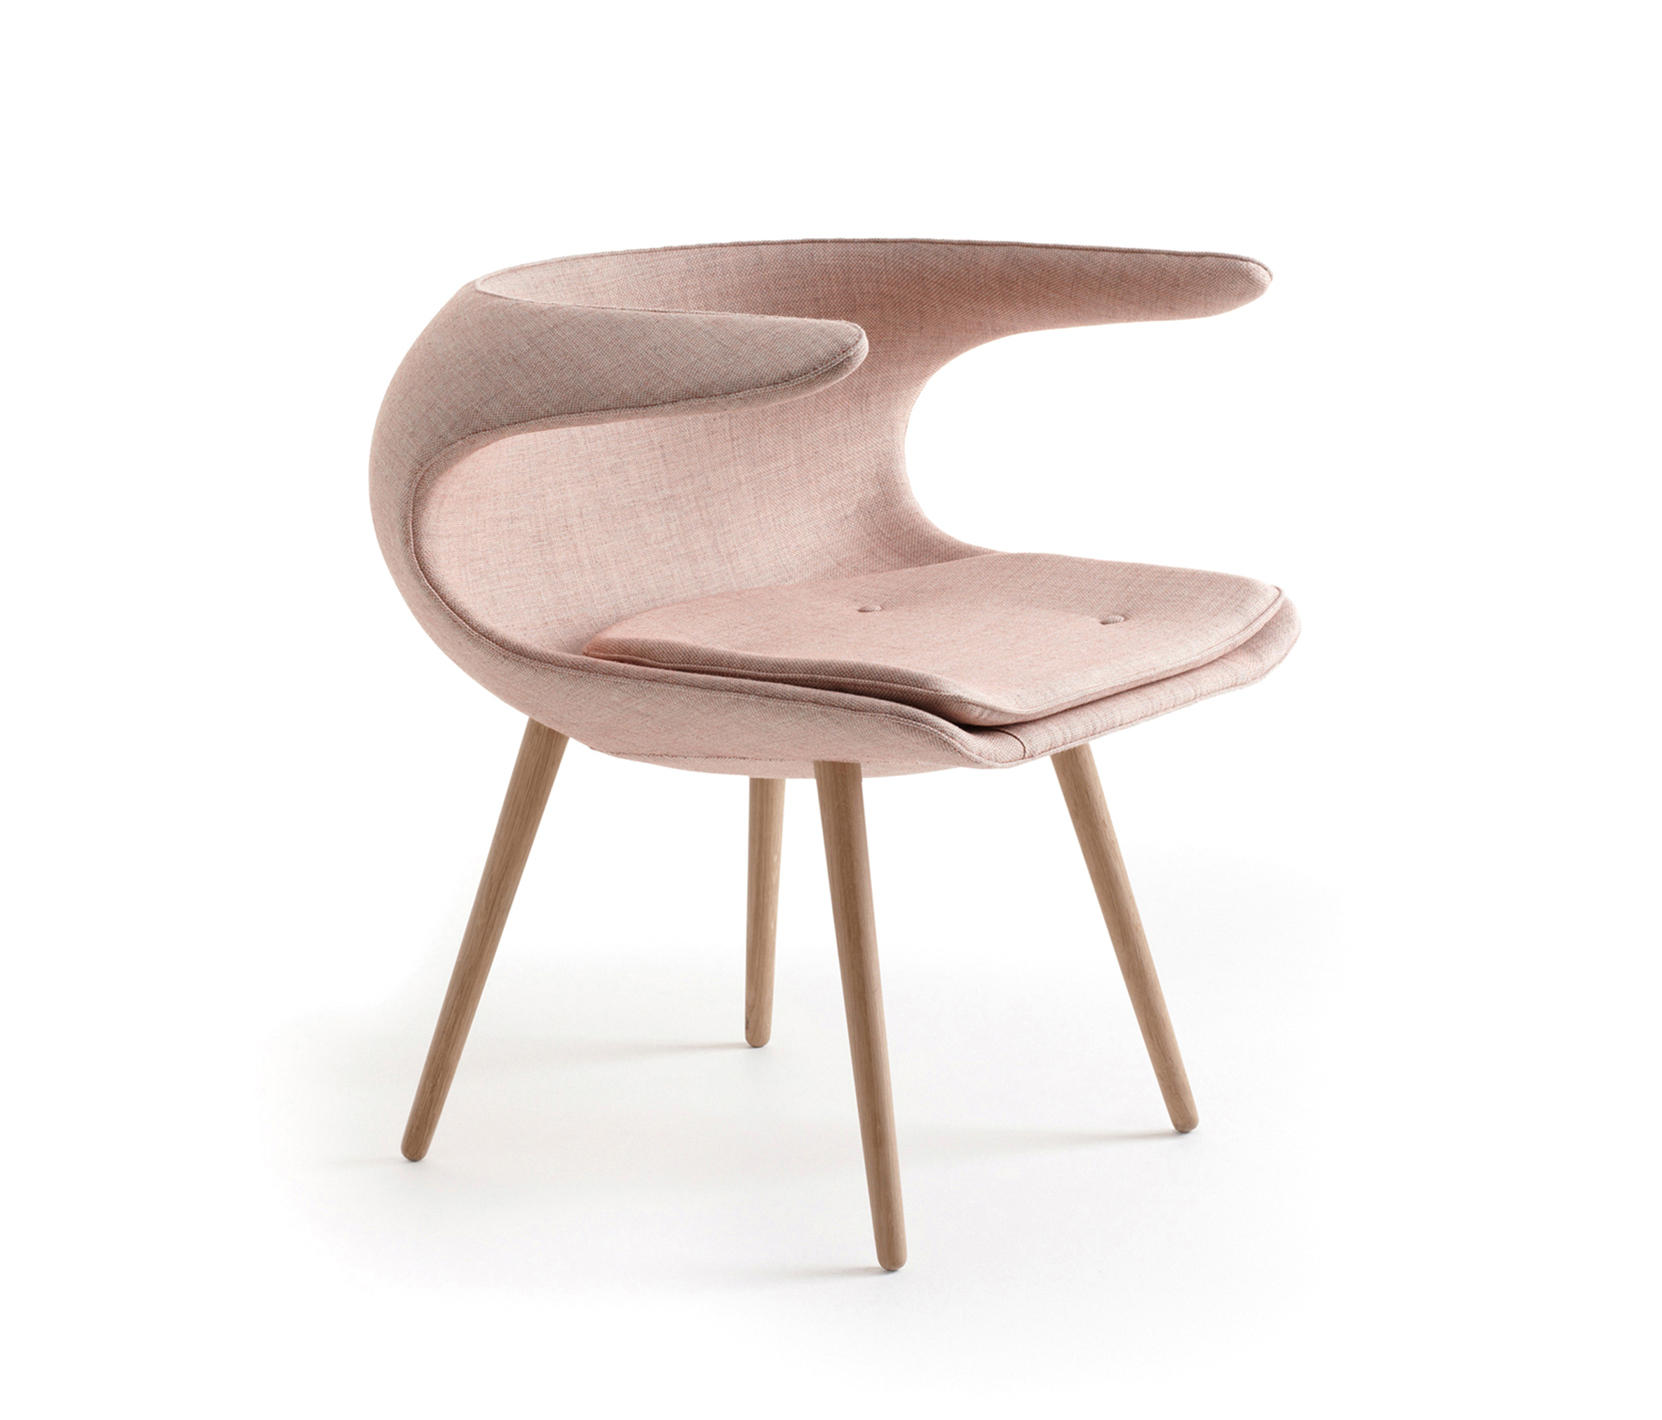 Frost chair visitors chairs side chairs from stouby for Scandinavian furniture